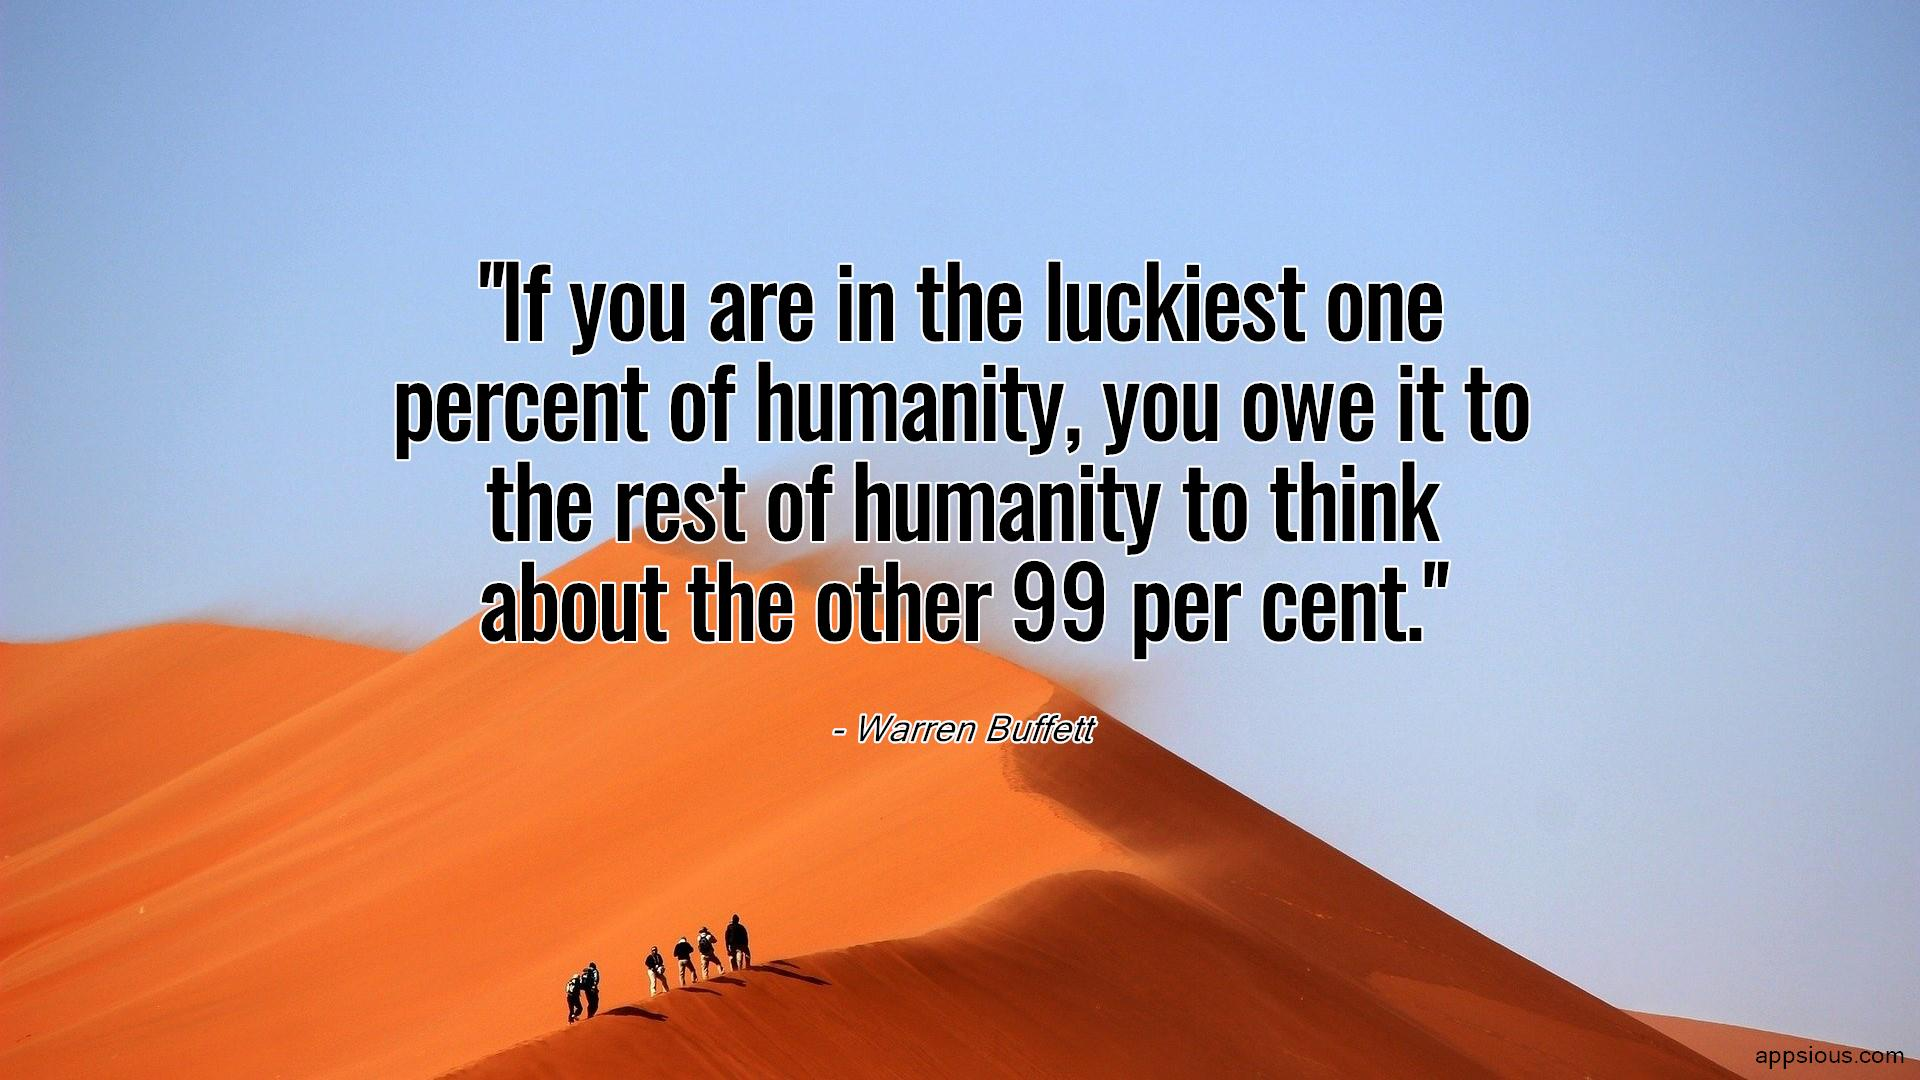 If you are in the luckiest one percent of humanity, you owe it to the rest of humanity to think about the other 99 per cent.